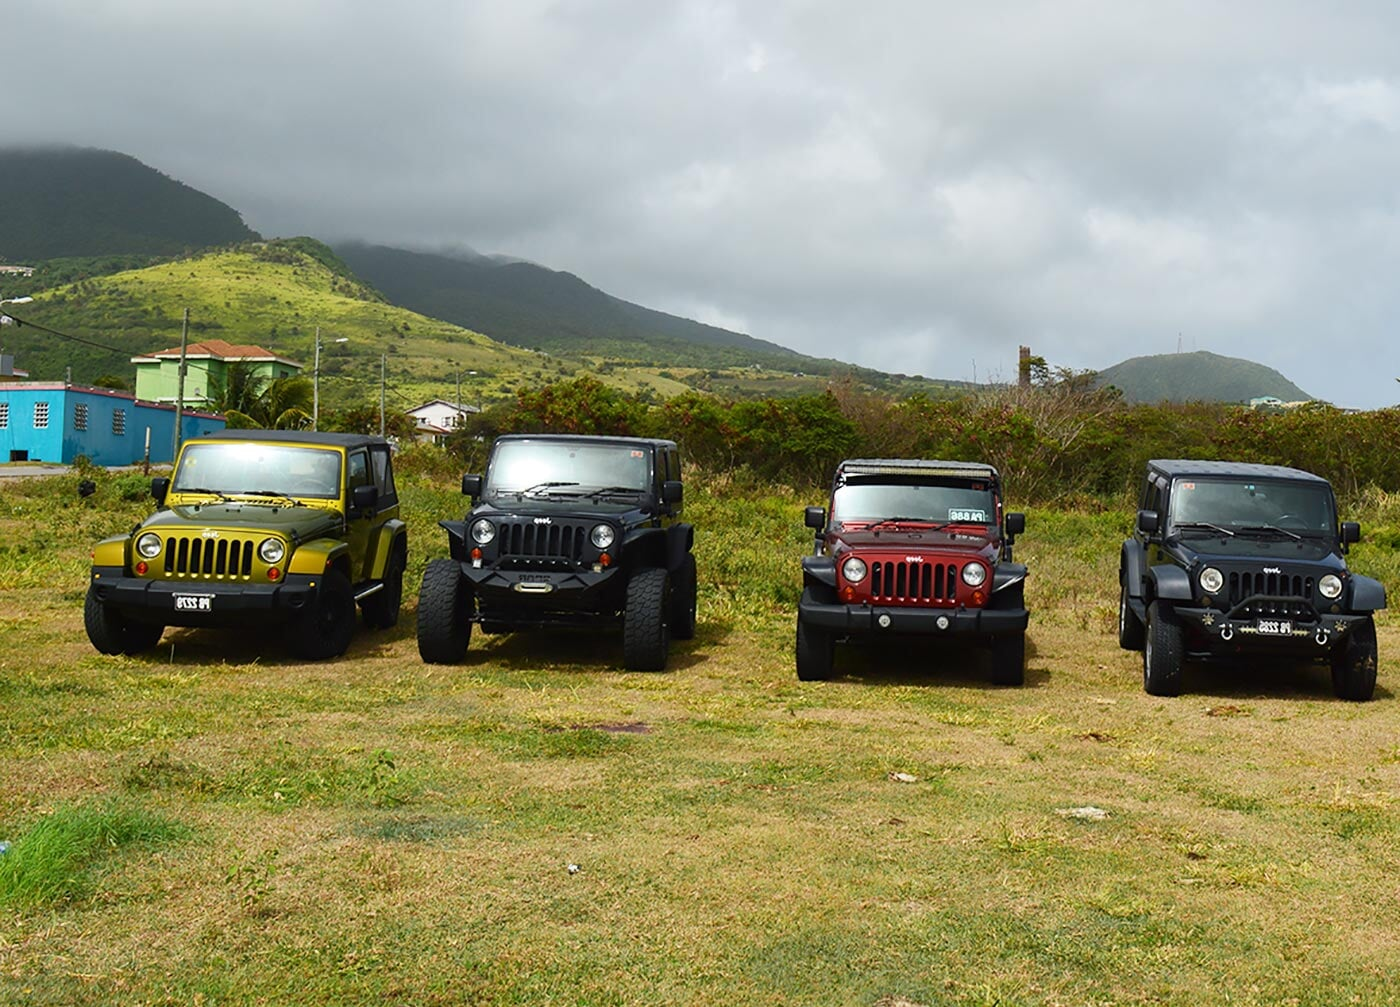 a fleet of jeeps parked in front of a scenic mountainous background